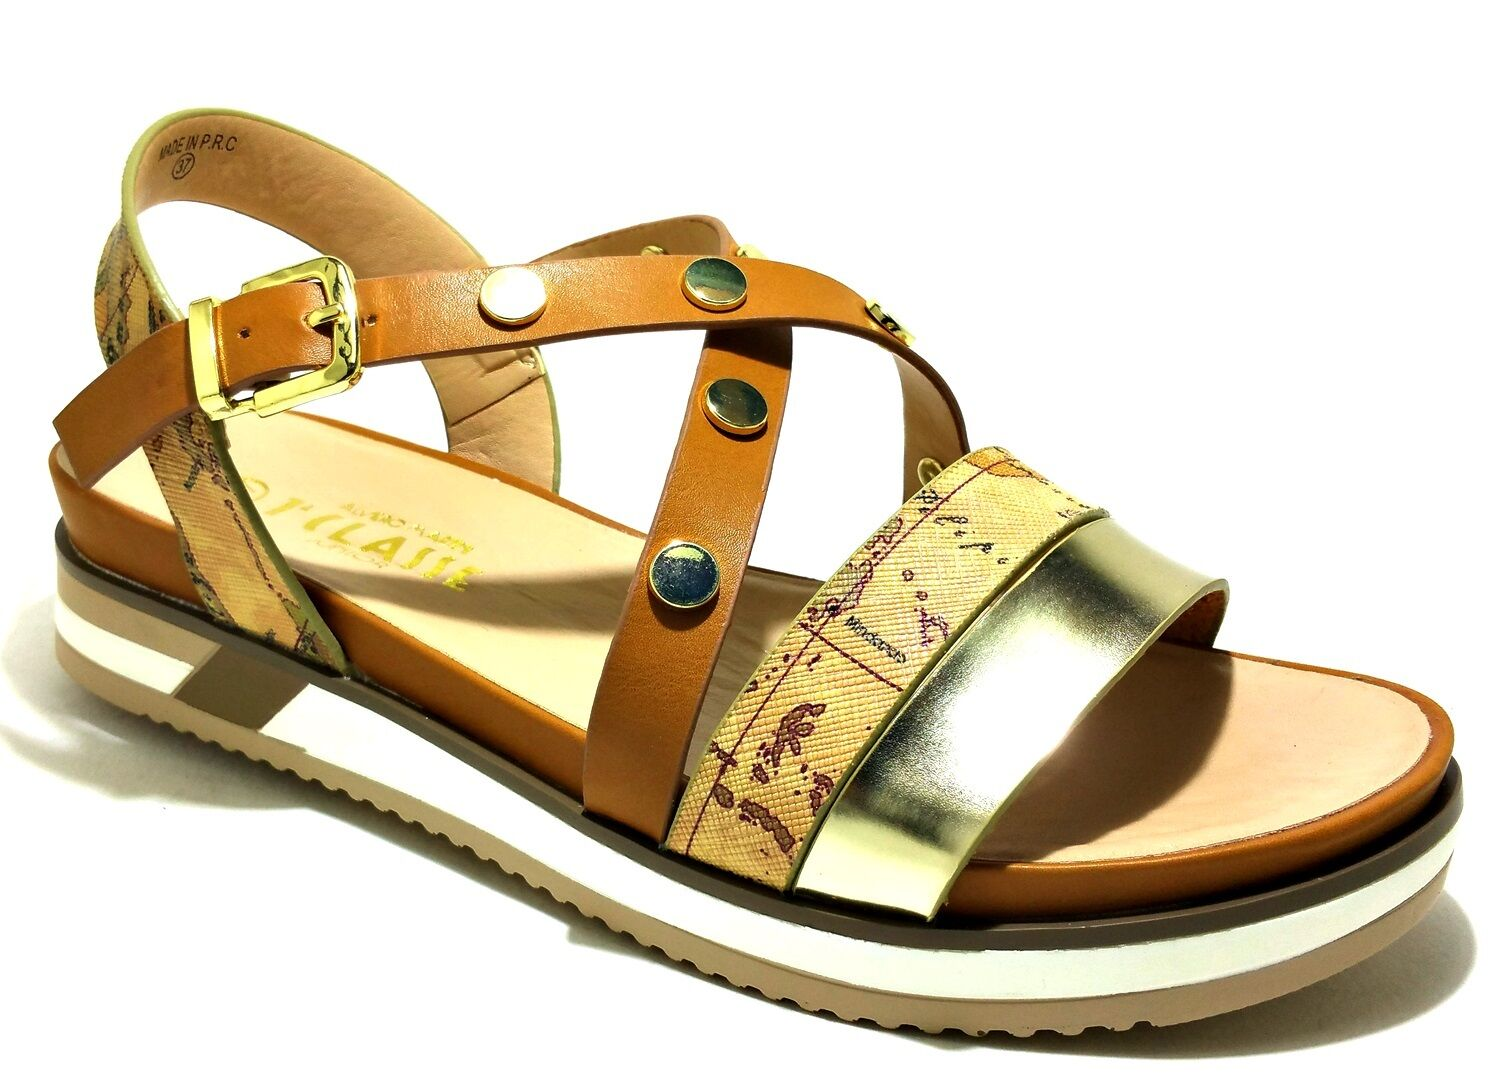 ALVIERO MARTINI geo geo geo shoes woman girl sandals low sneakers casual leather 05d697